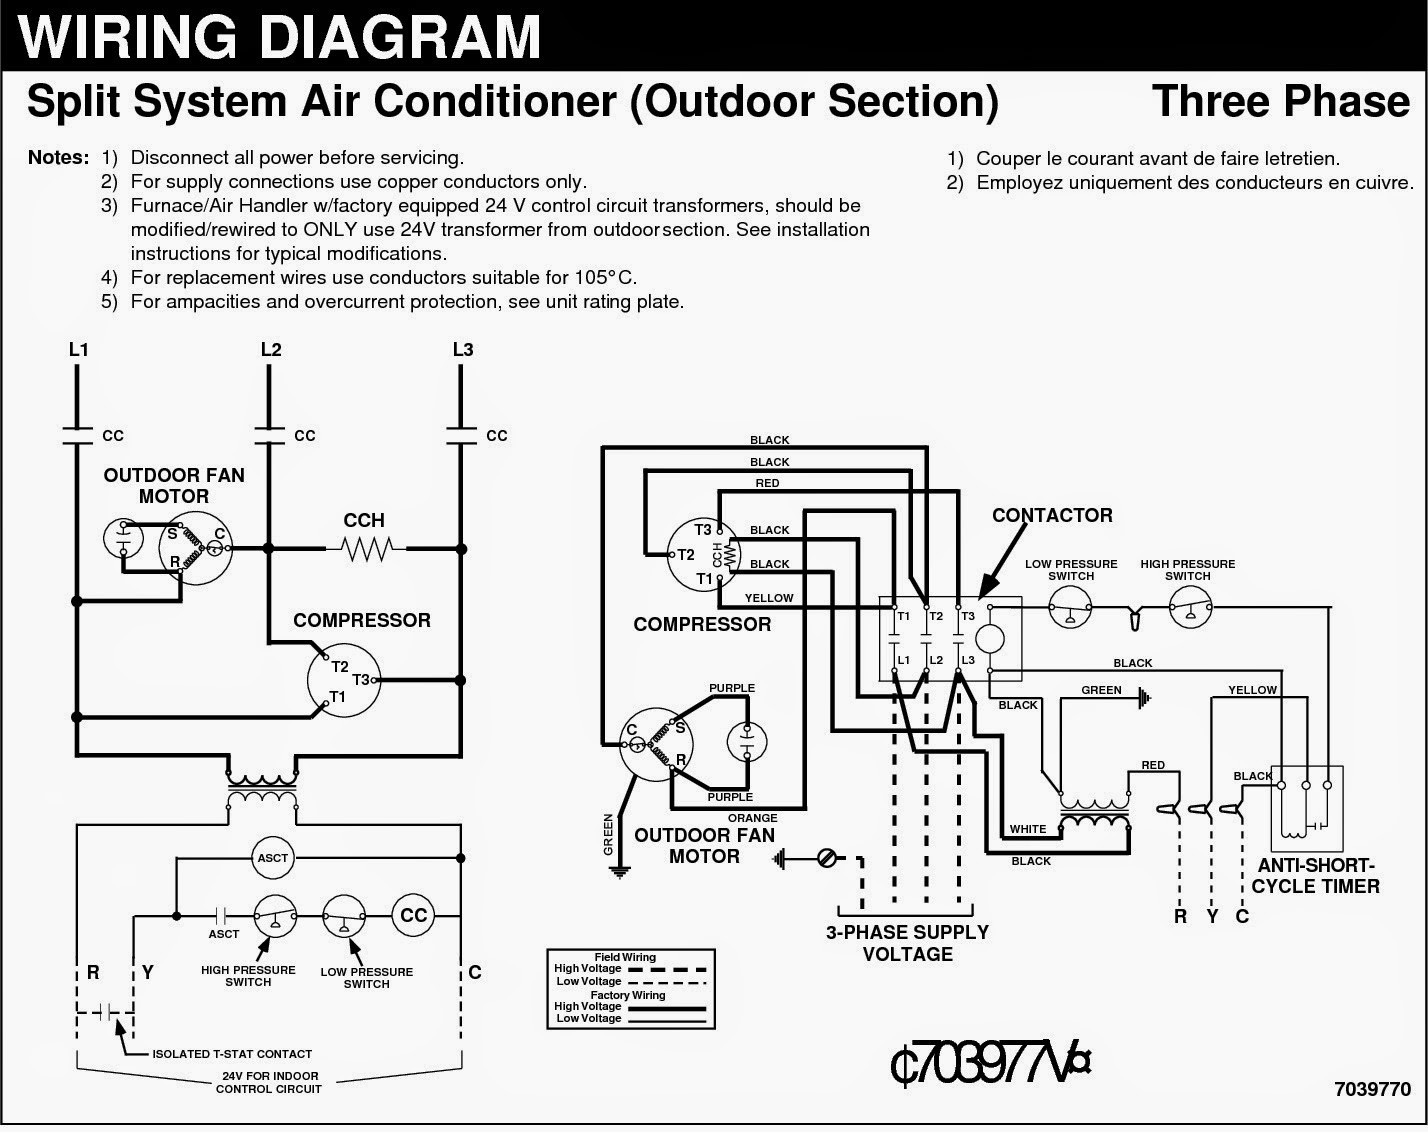 Ac Wiring Basics Schema Diagrams How To Wire A Light Switch Diagram House Truck In Air Conditioning Detailed Basic